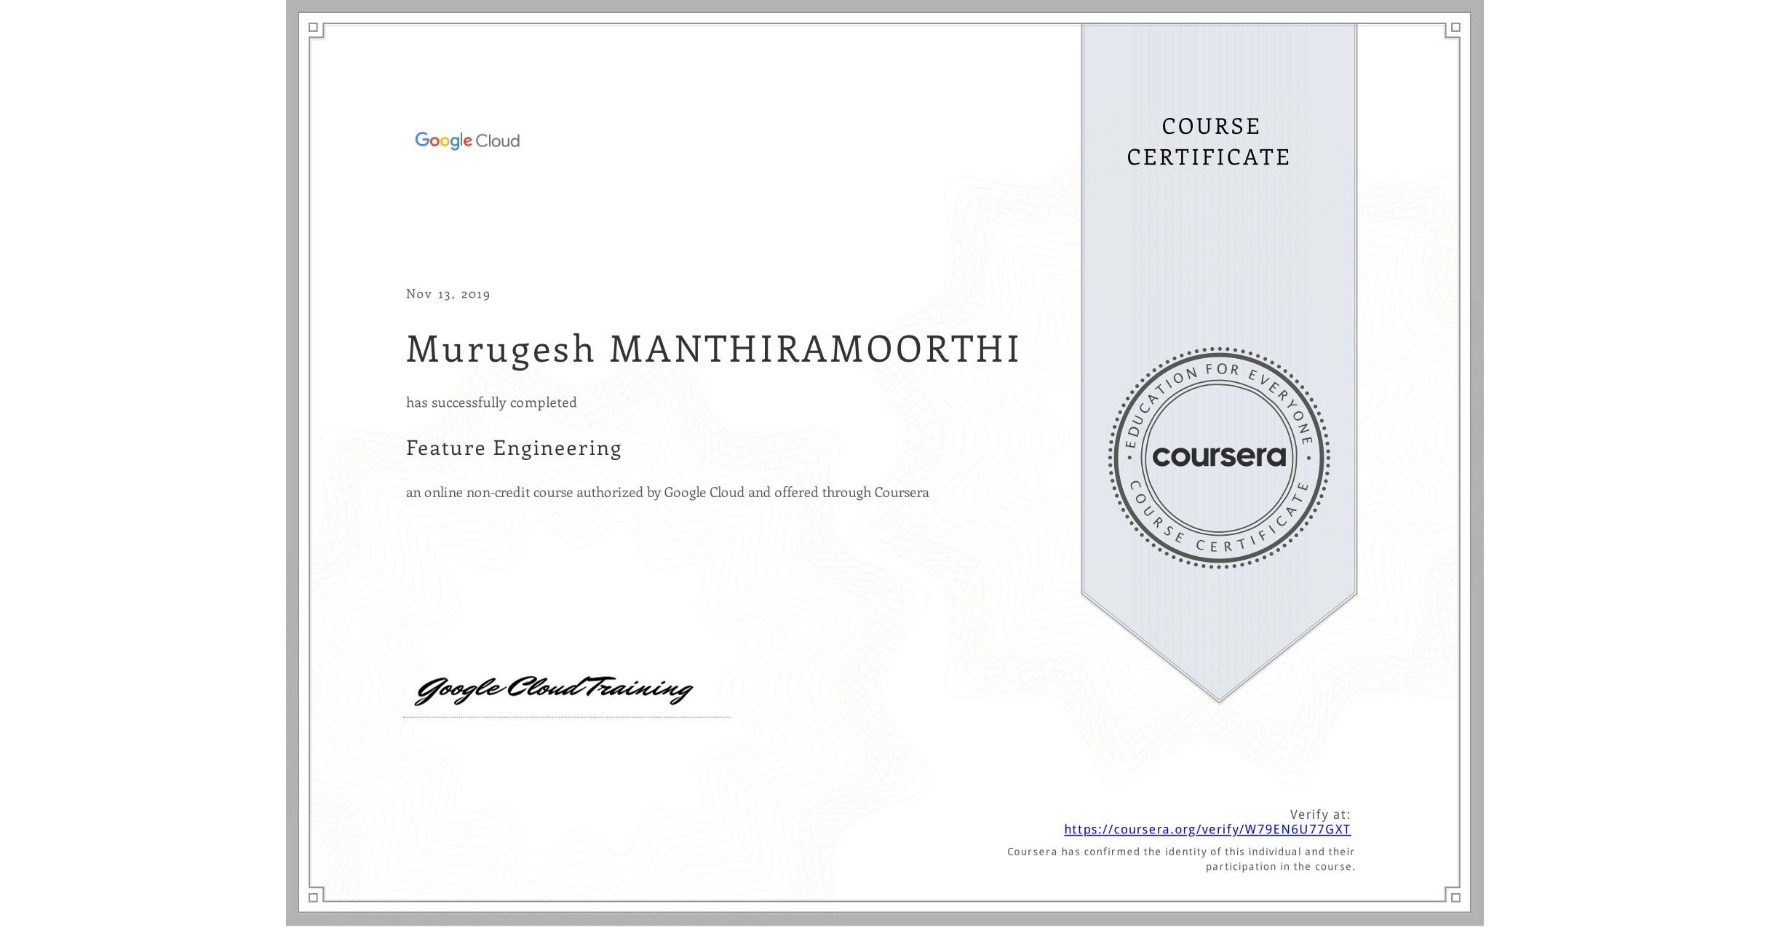 View certificate for Murugesh Manthiramoorthi, Feature Engineering, an online non-credit course authorized by Google Cloud and offered through Coursera